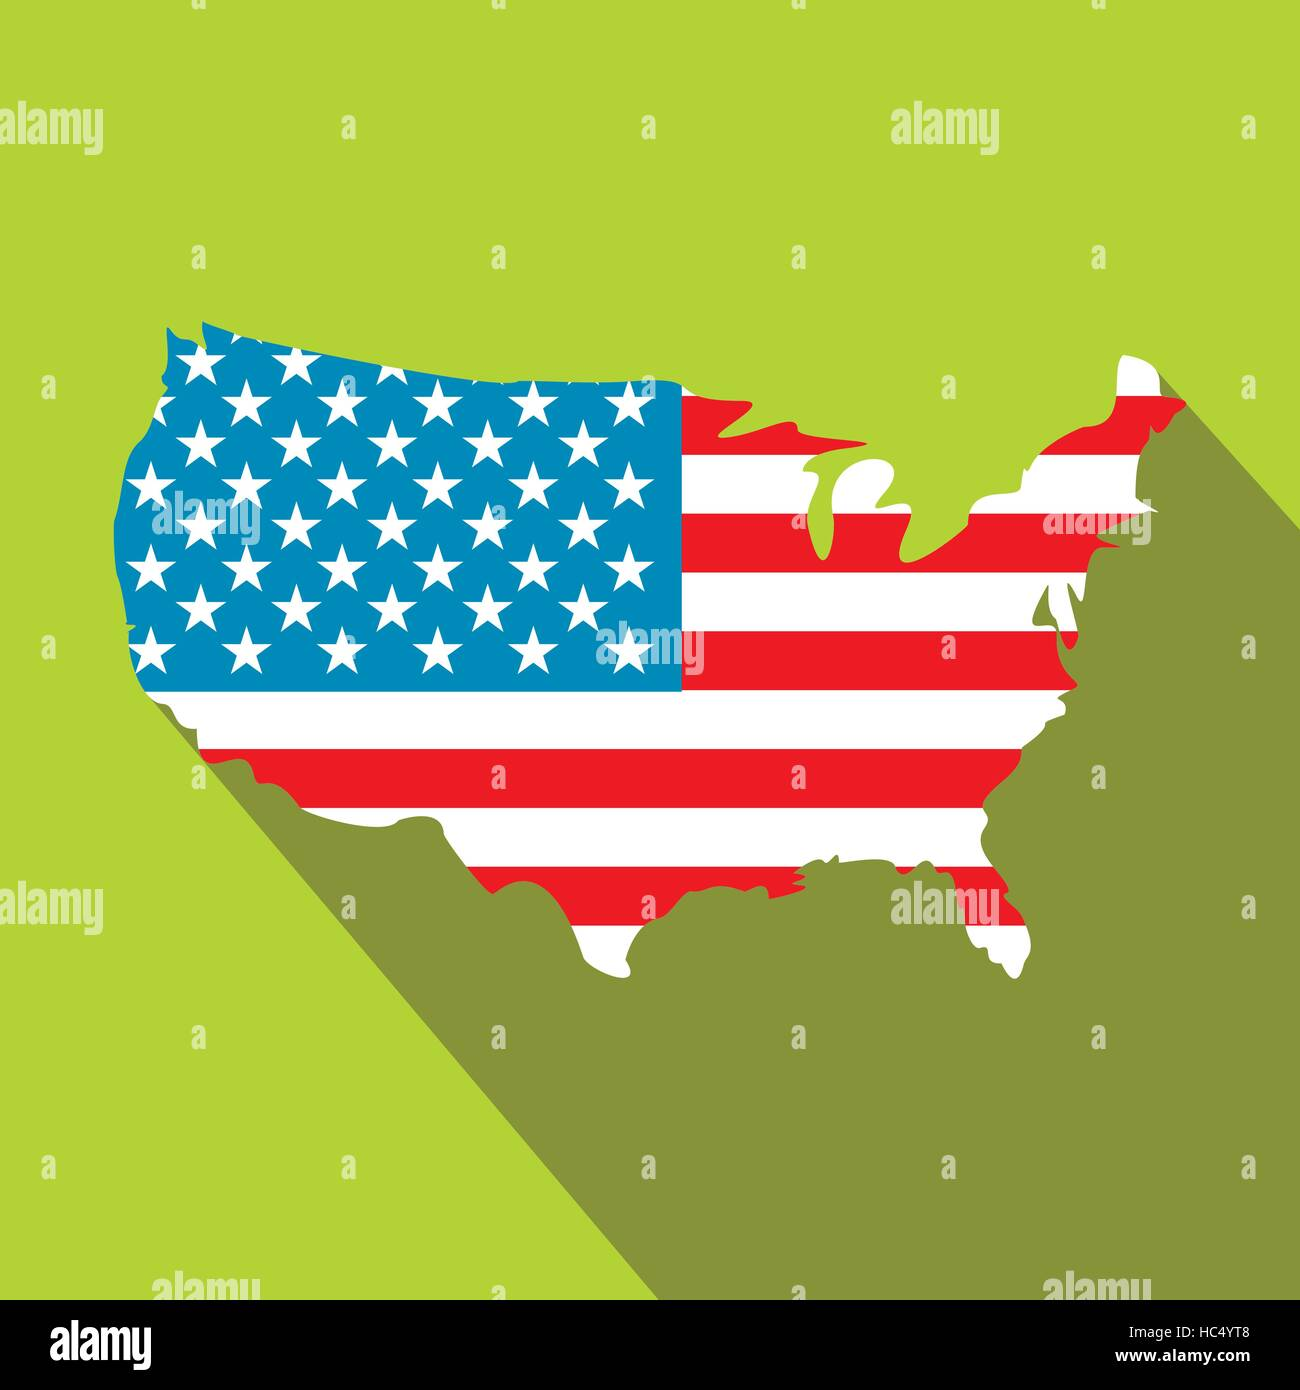 USA map flag flat icon Stock Vector Art Illustration Vector Image